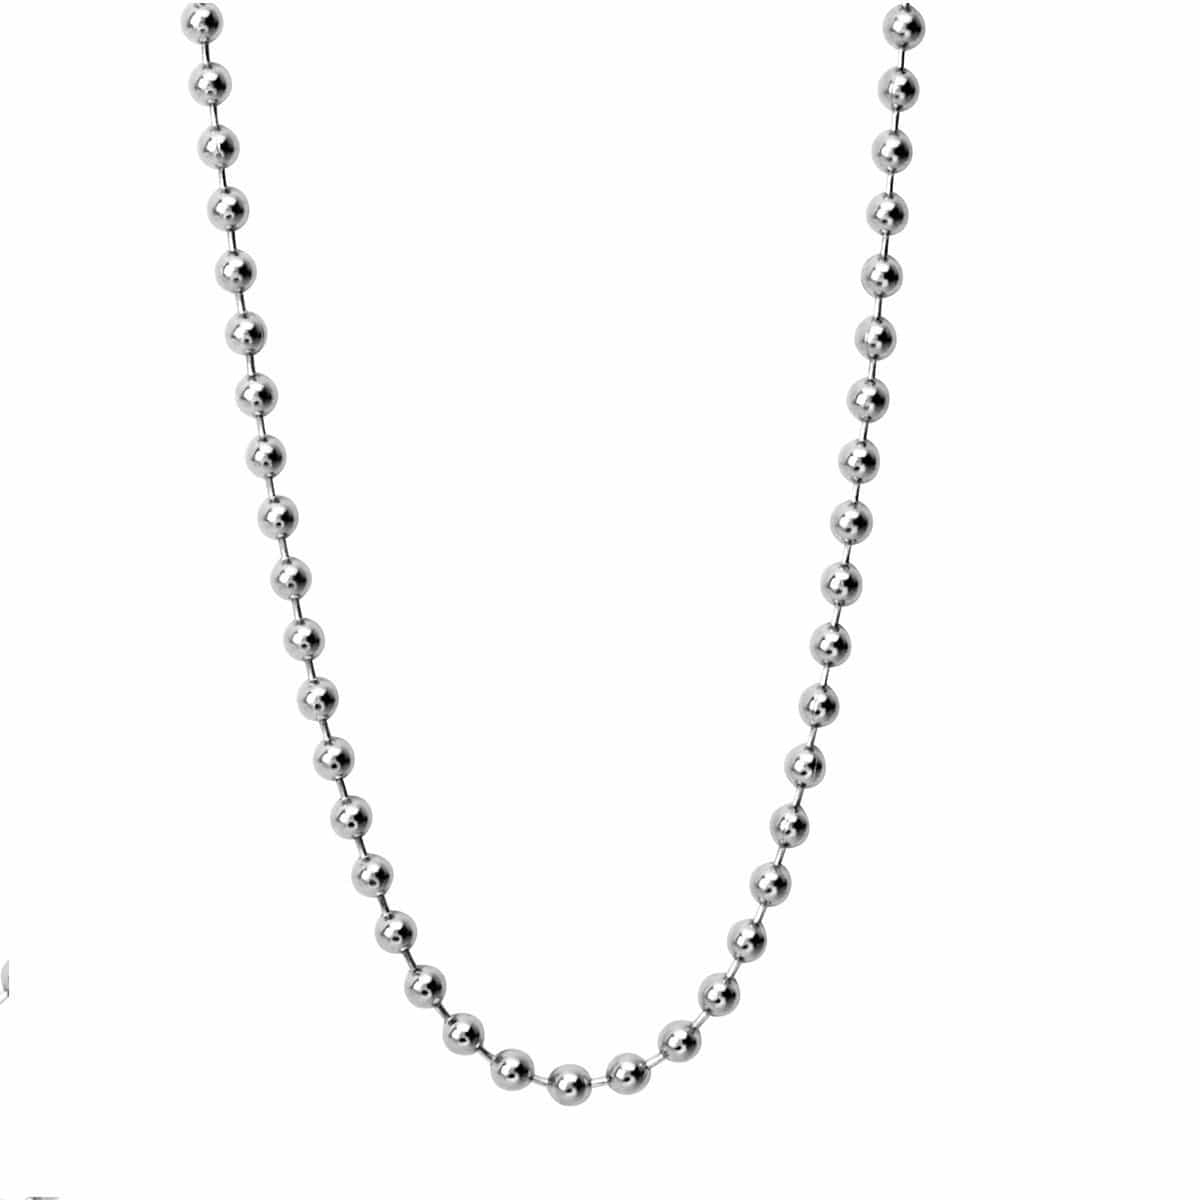 Silver Stainless Steel 3mm Ball Chain with Lobster-Claw Closure Chains